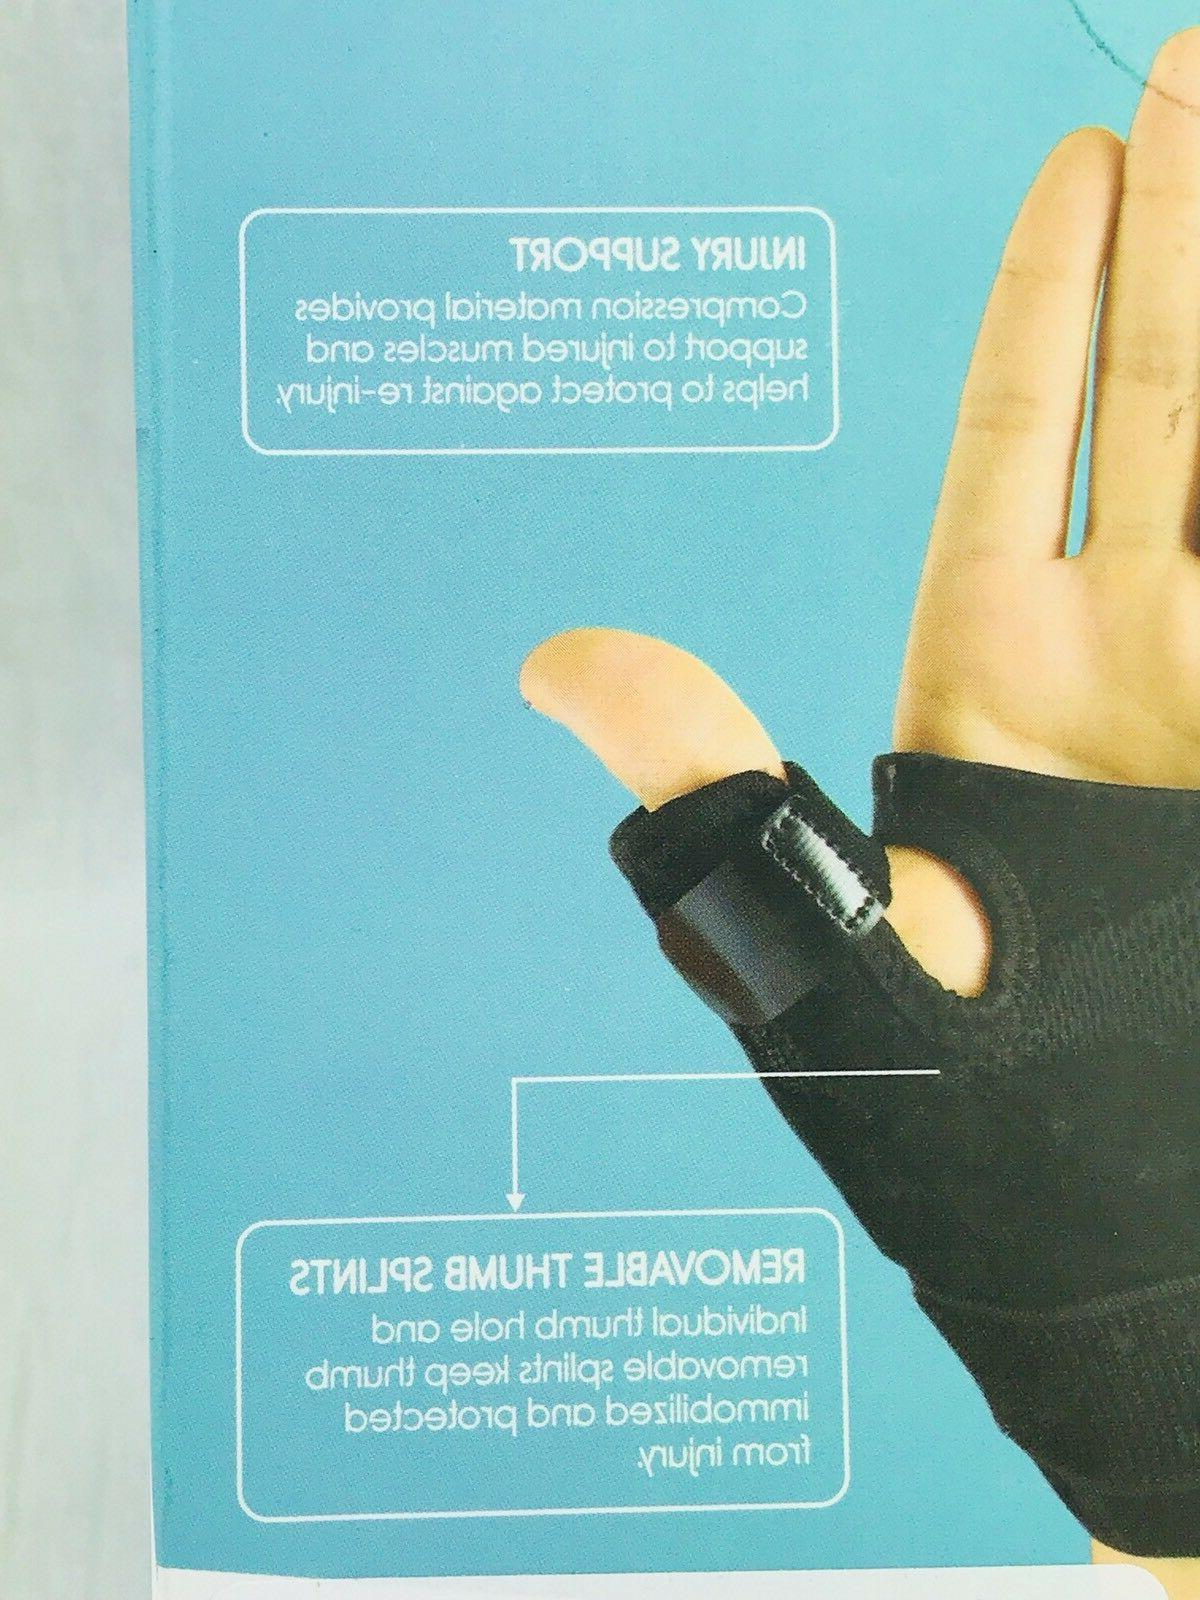 Arthritis Thumb Support Splint Vive for Sprains